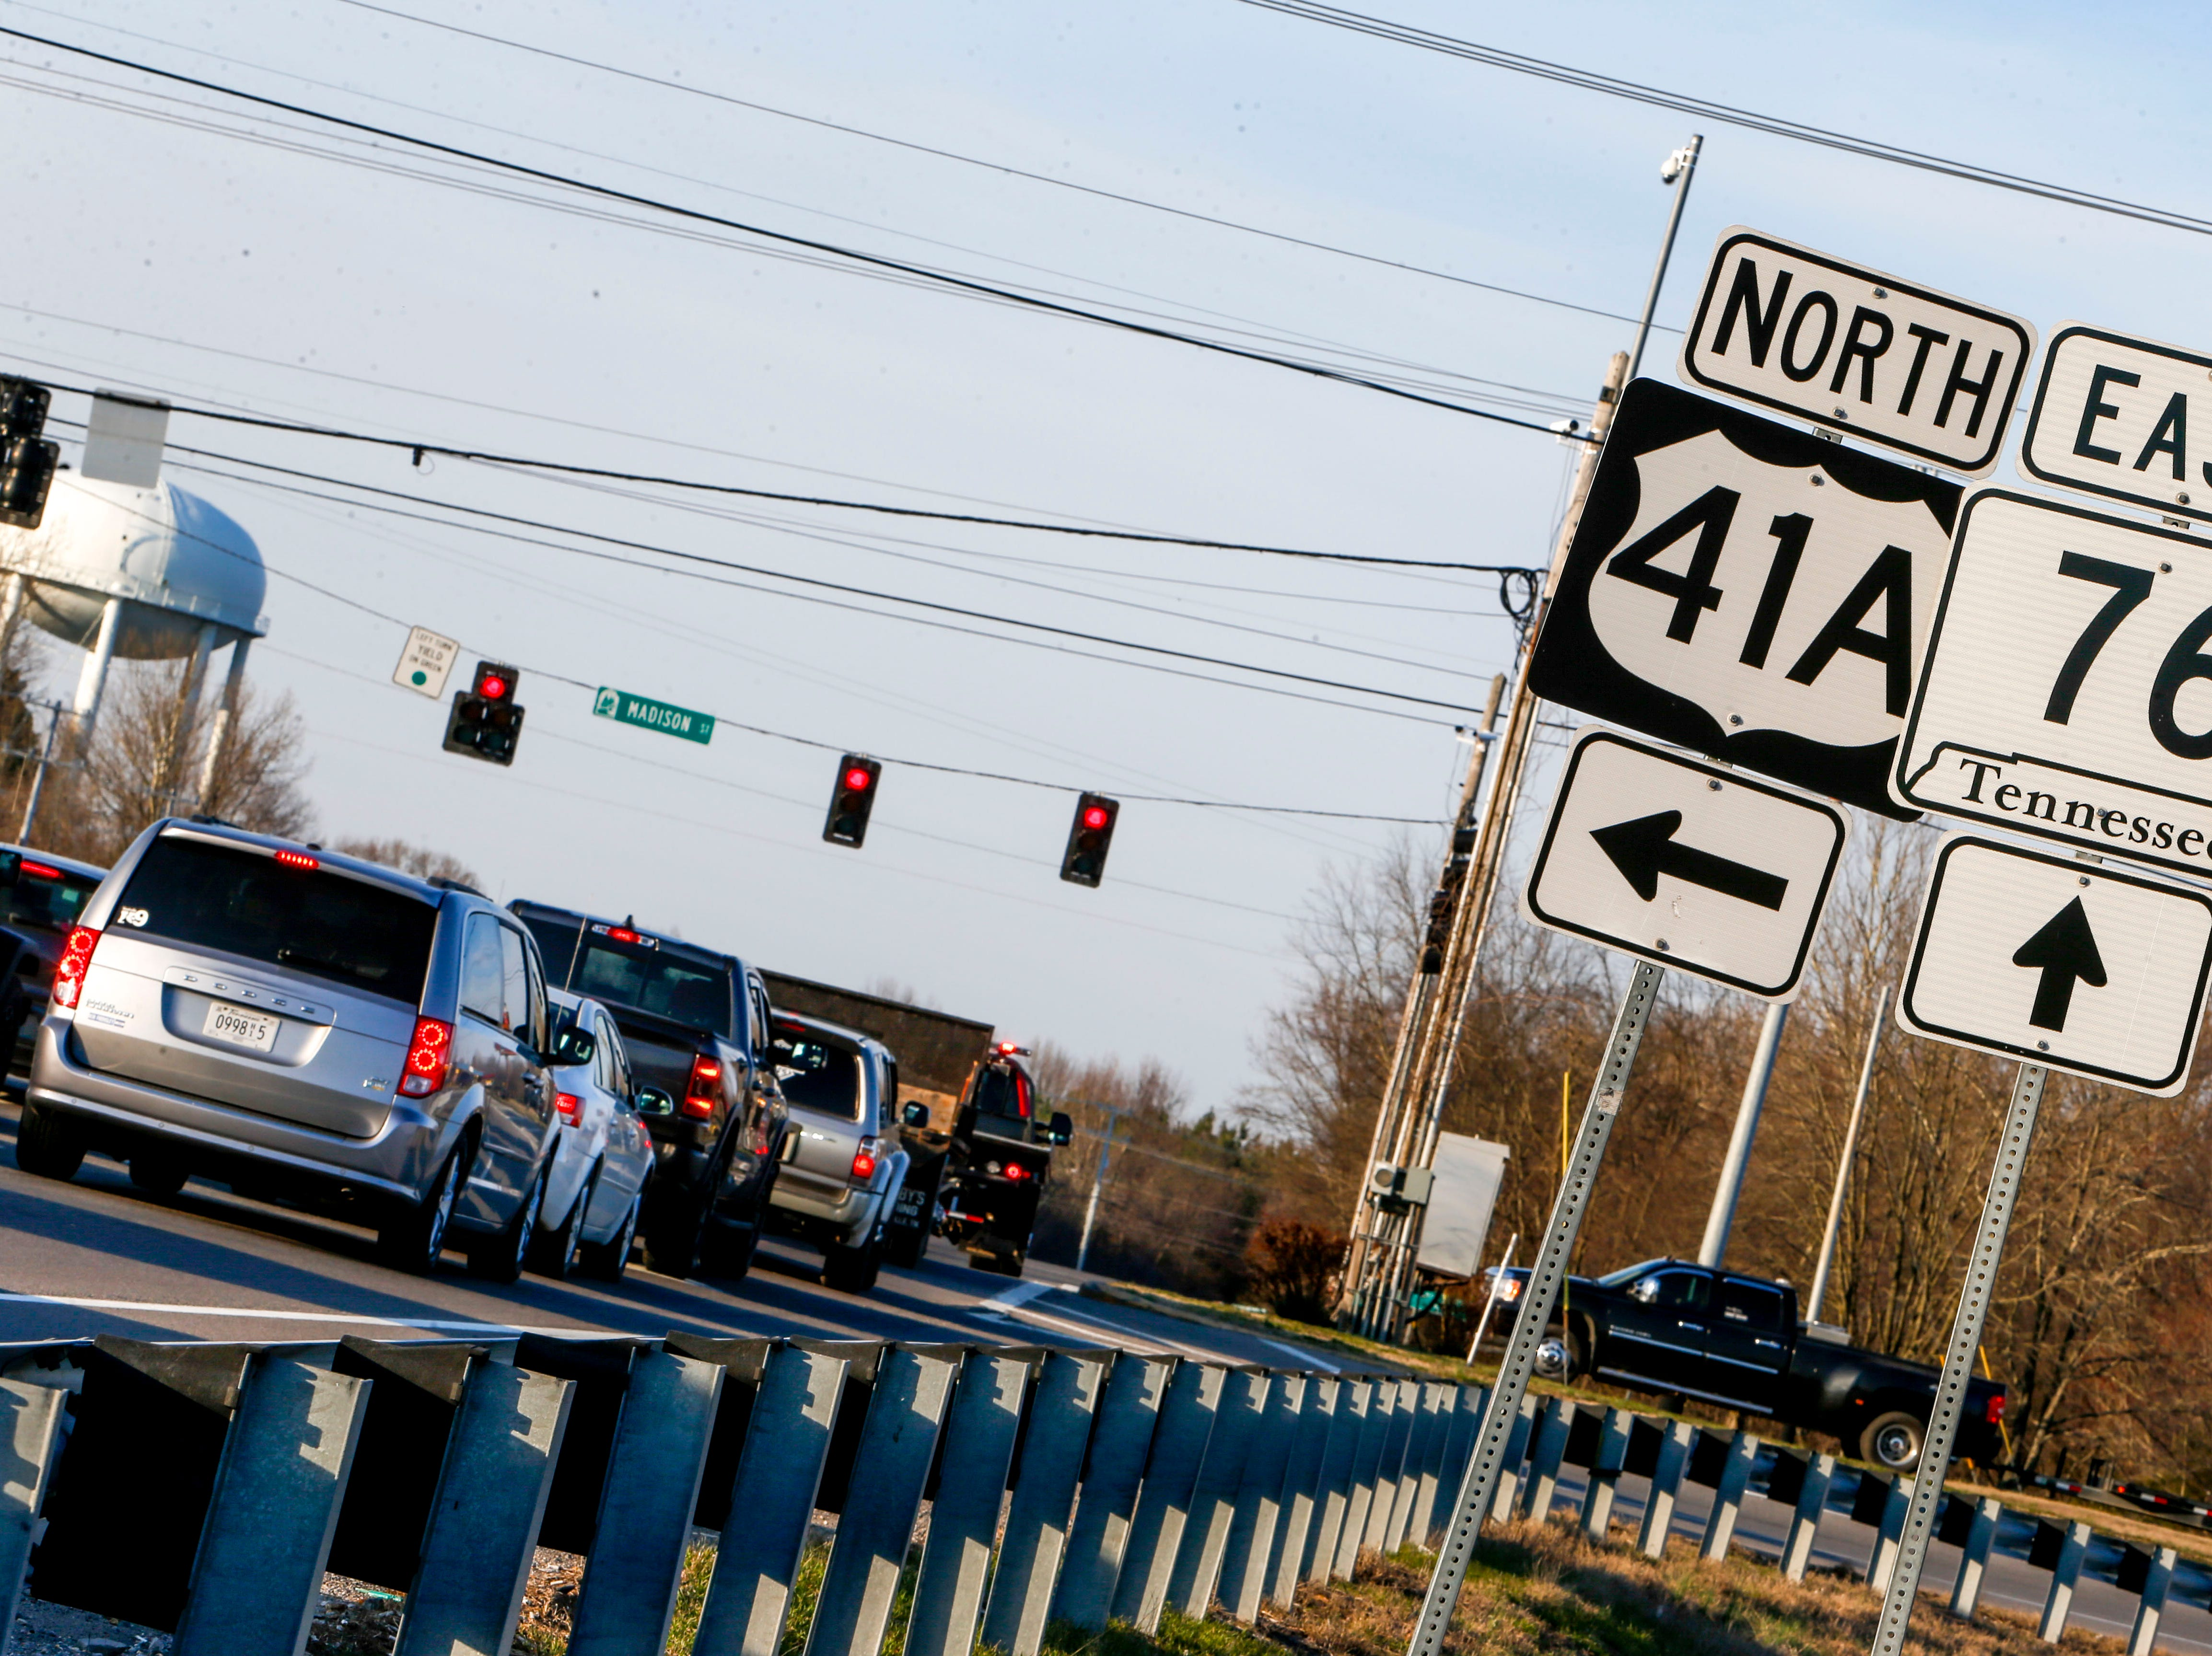 Cars line up at the light at the intersection of Madison St and Hwy 76 in Clarksville, Tenn., on Tuesday, March 19, 2019.